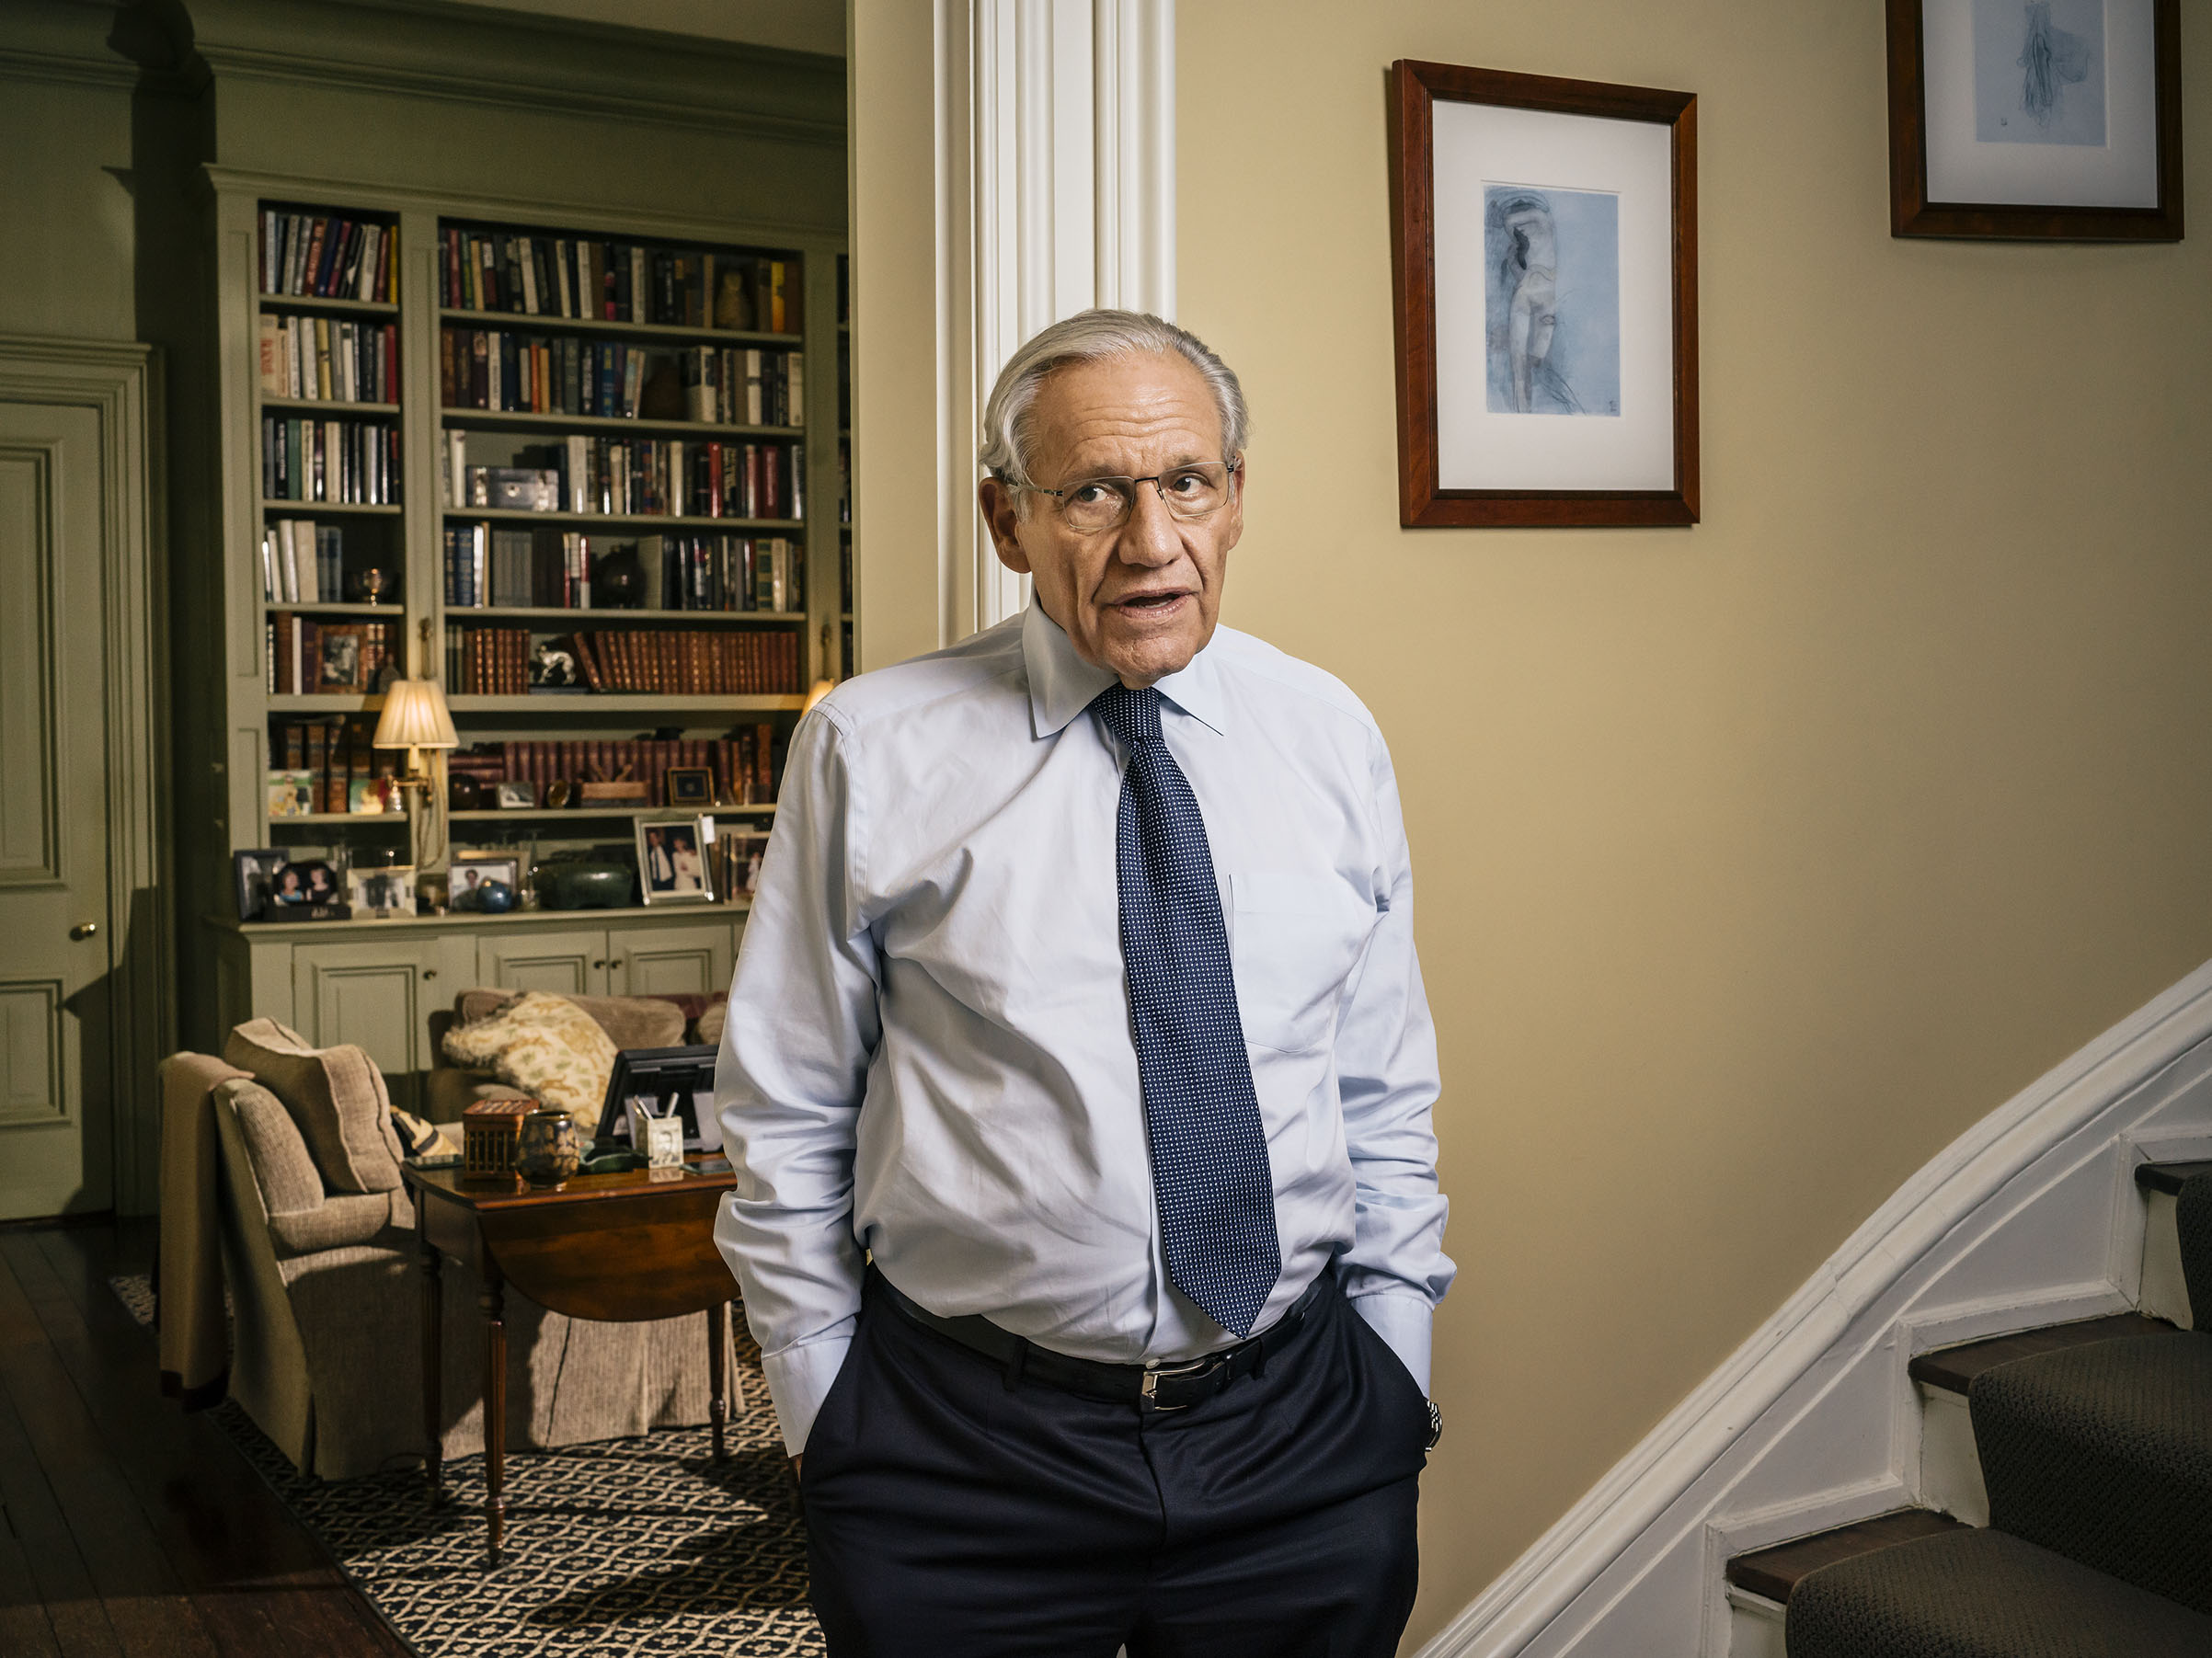 Journalist and author Bob Woodward at his home in Washington, D.C. on Sept. 23, 2018.